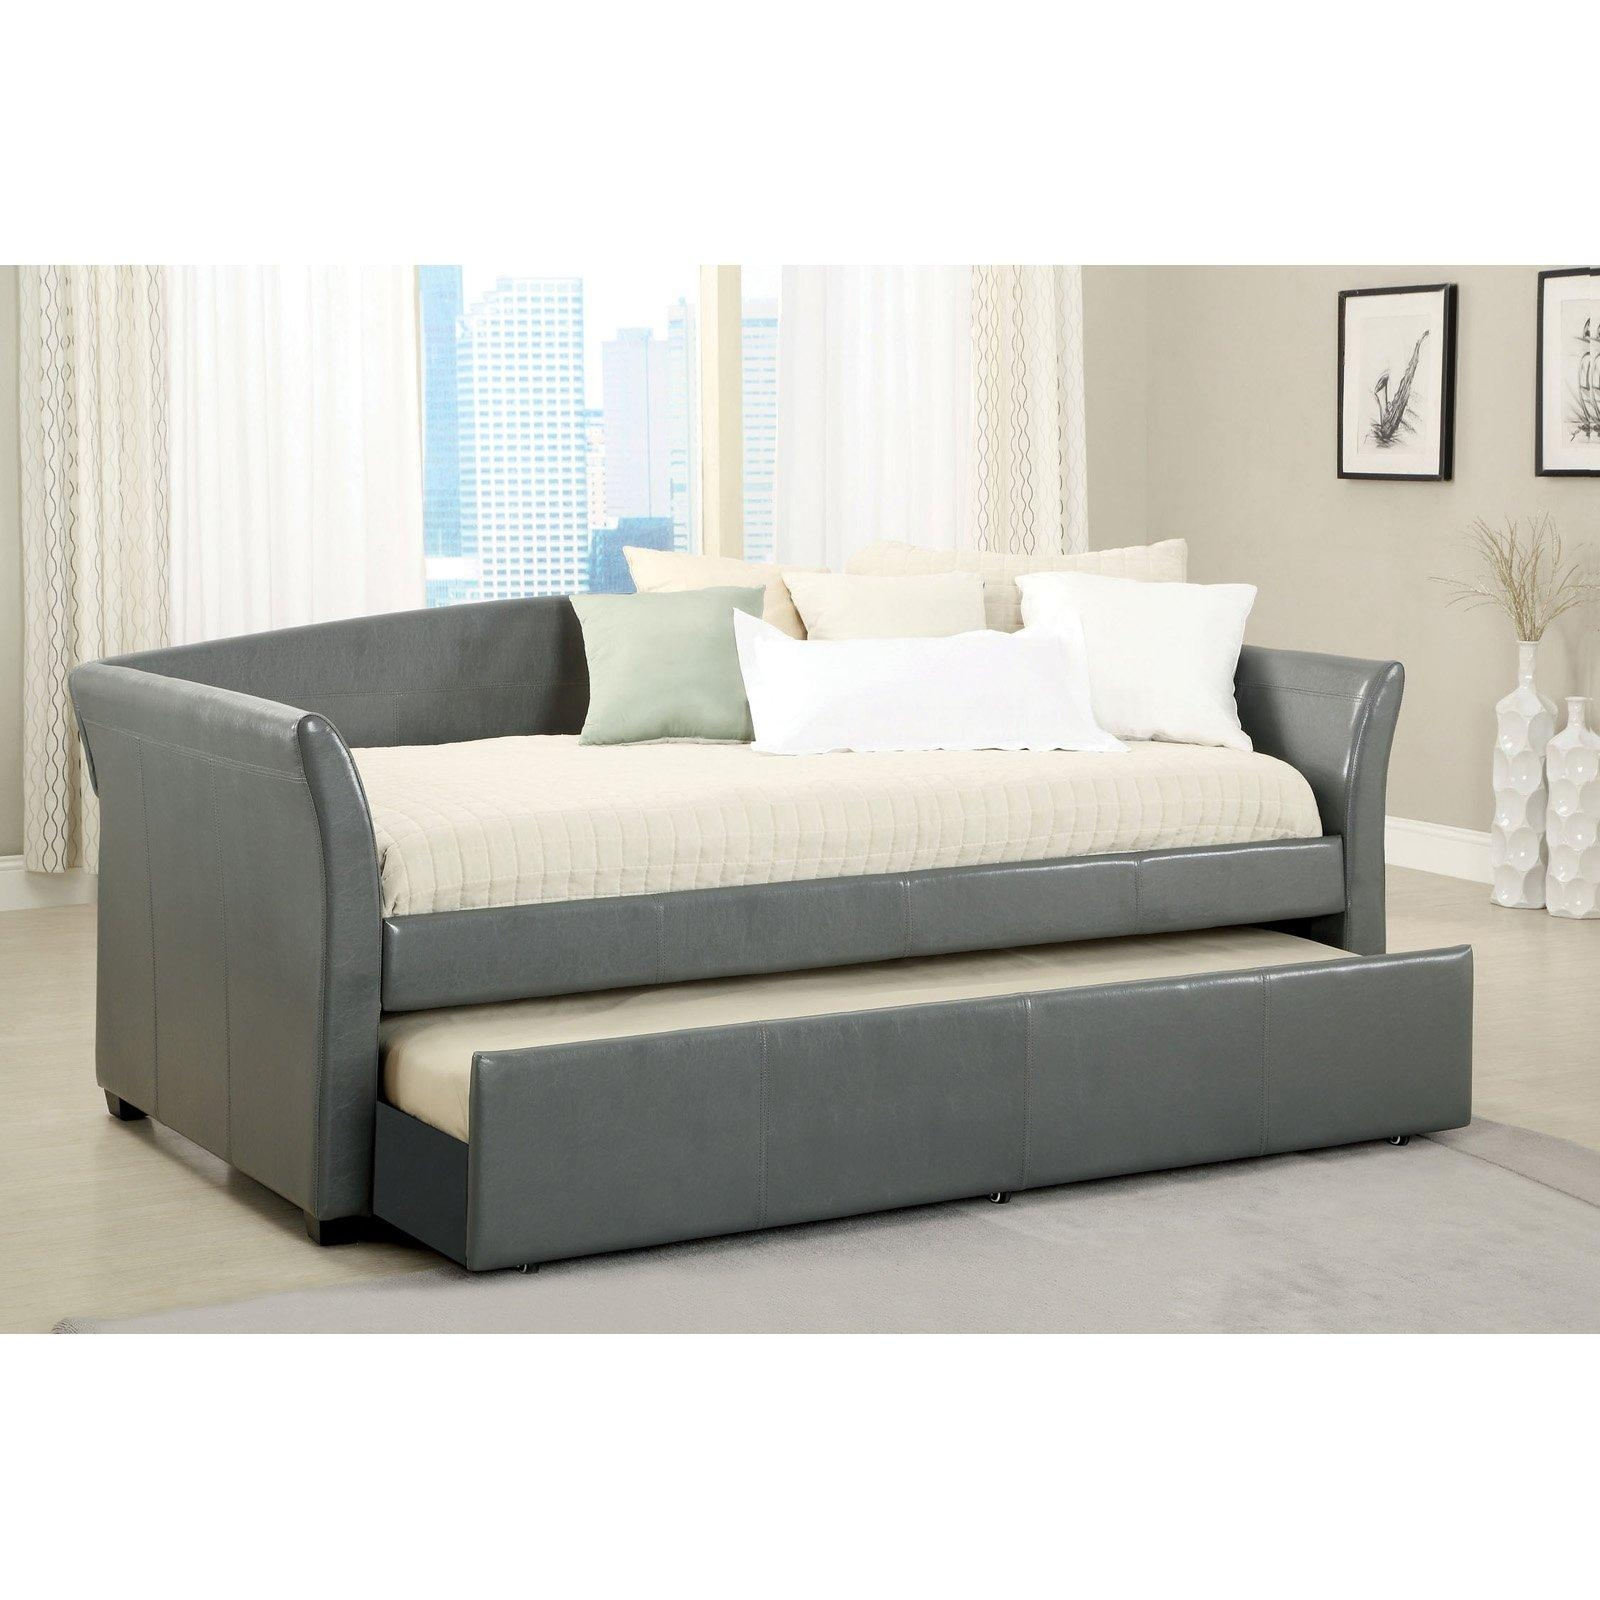 Sofa Daybed With Trundle | Best Sofas Ideas – Sofascouch With Regard To Sofas Daybed With Trundle (Image 11 of 20)